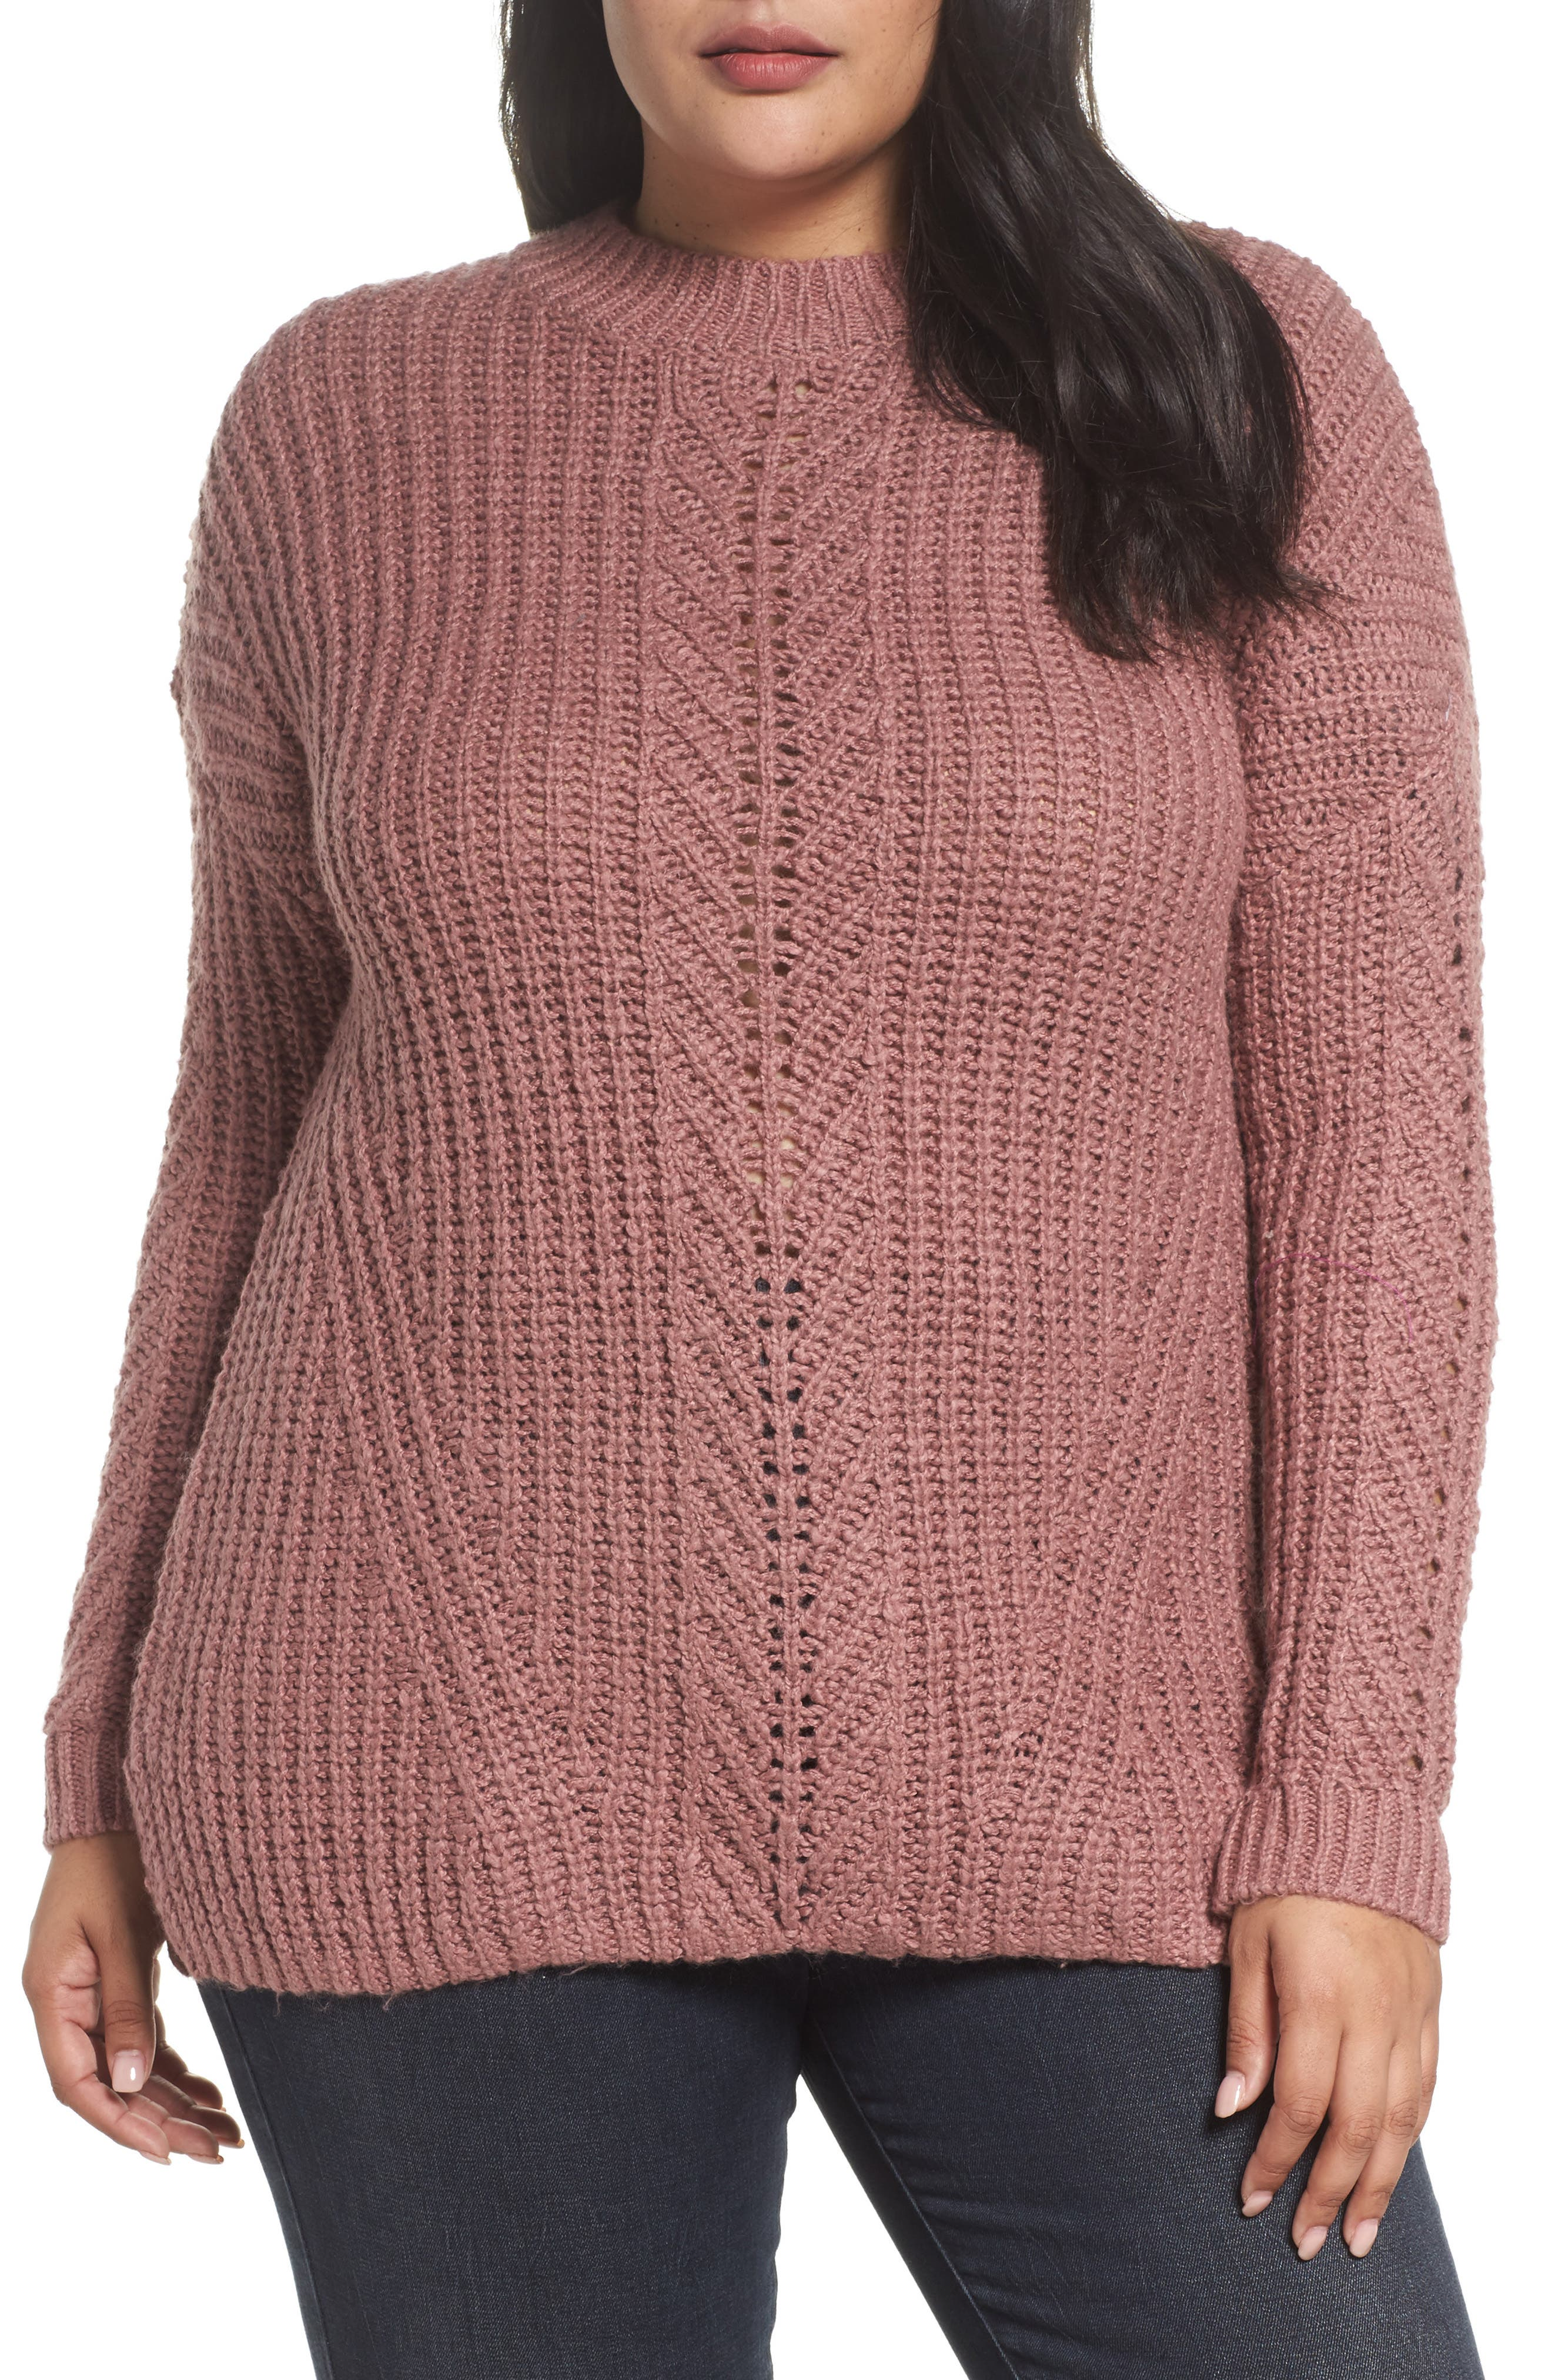 Main Image - Lucky Brand Open Stitch Sweater (Plus Size)